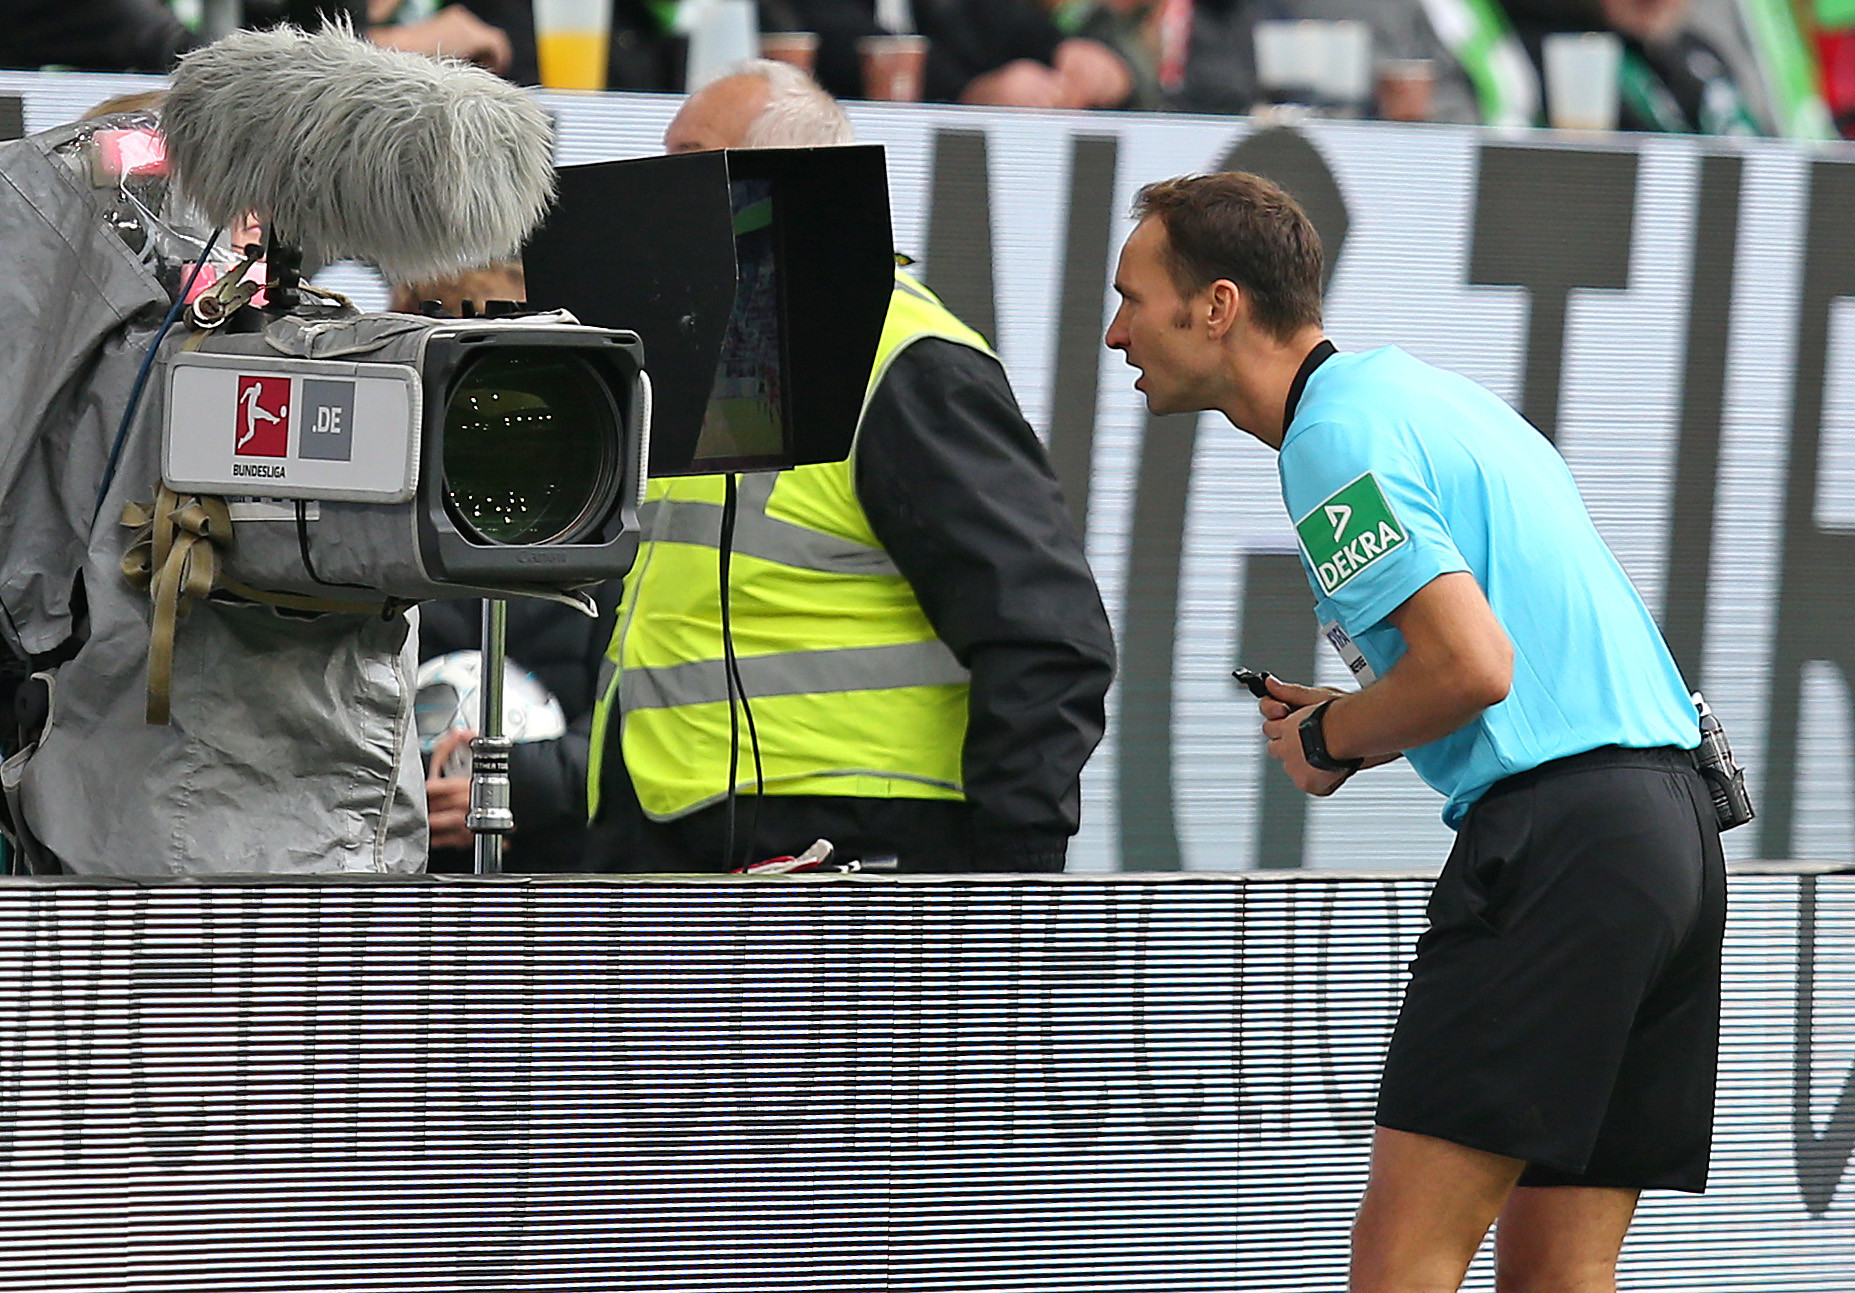 In leagues around Europe, the referee consults VAR directly via a pitch-side video ©Getty Images